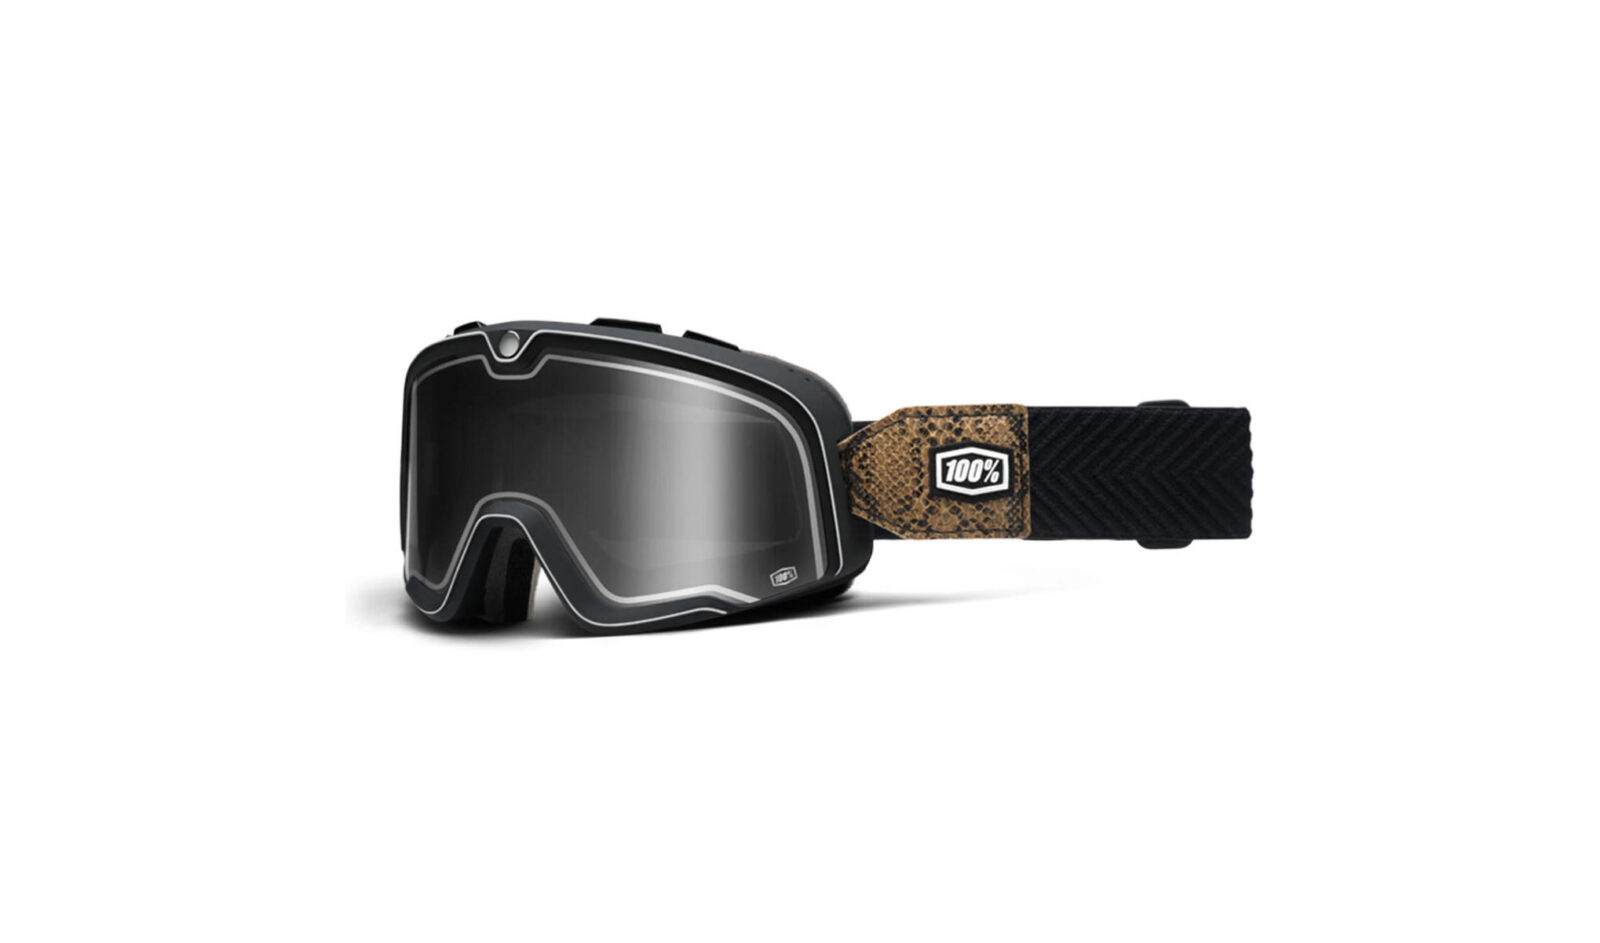 Motorcycle Goggles 1600x943 - 100% Barstow Snake River Goggles